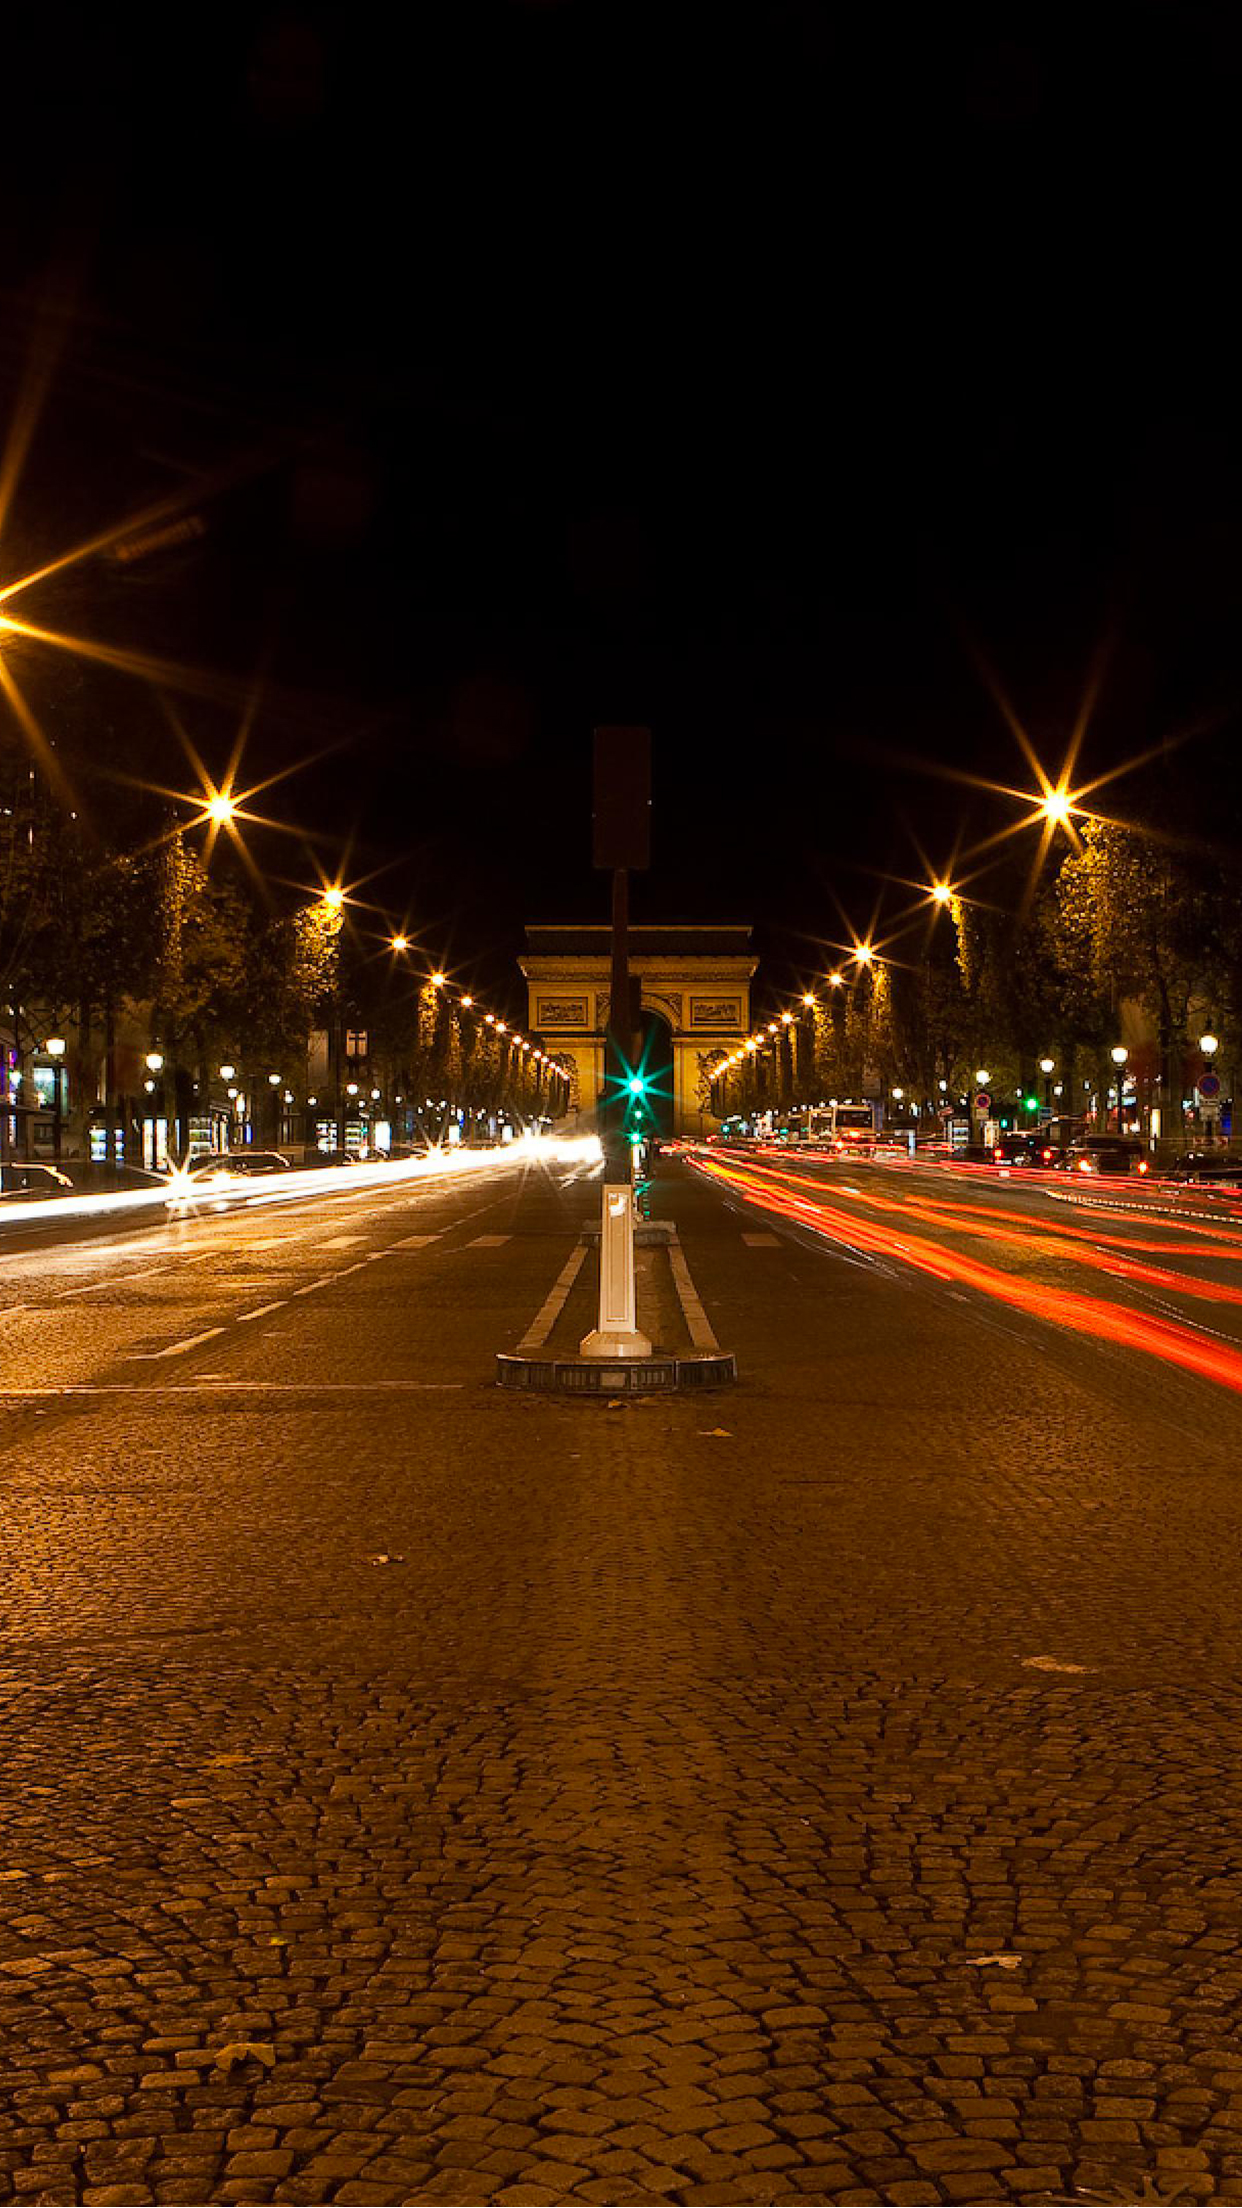 Paris By Night Road Wallpaper For Iphone X 8 7 6 Free